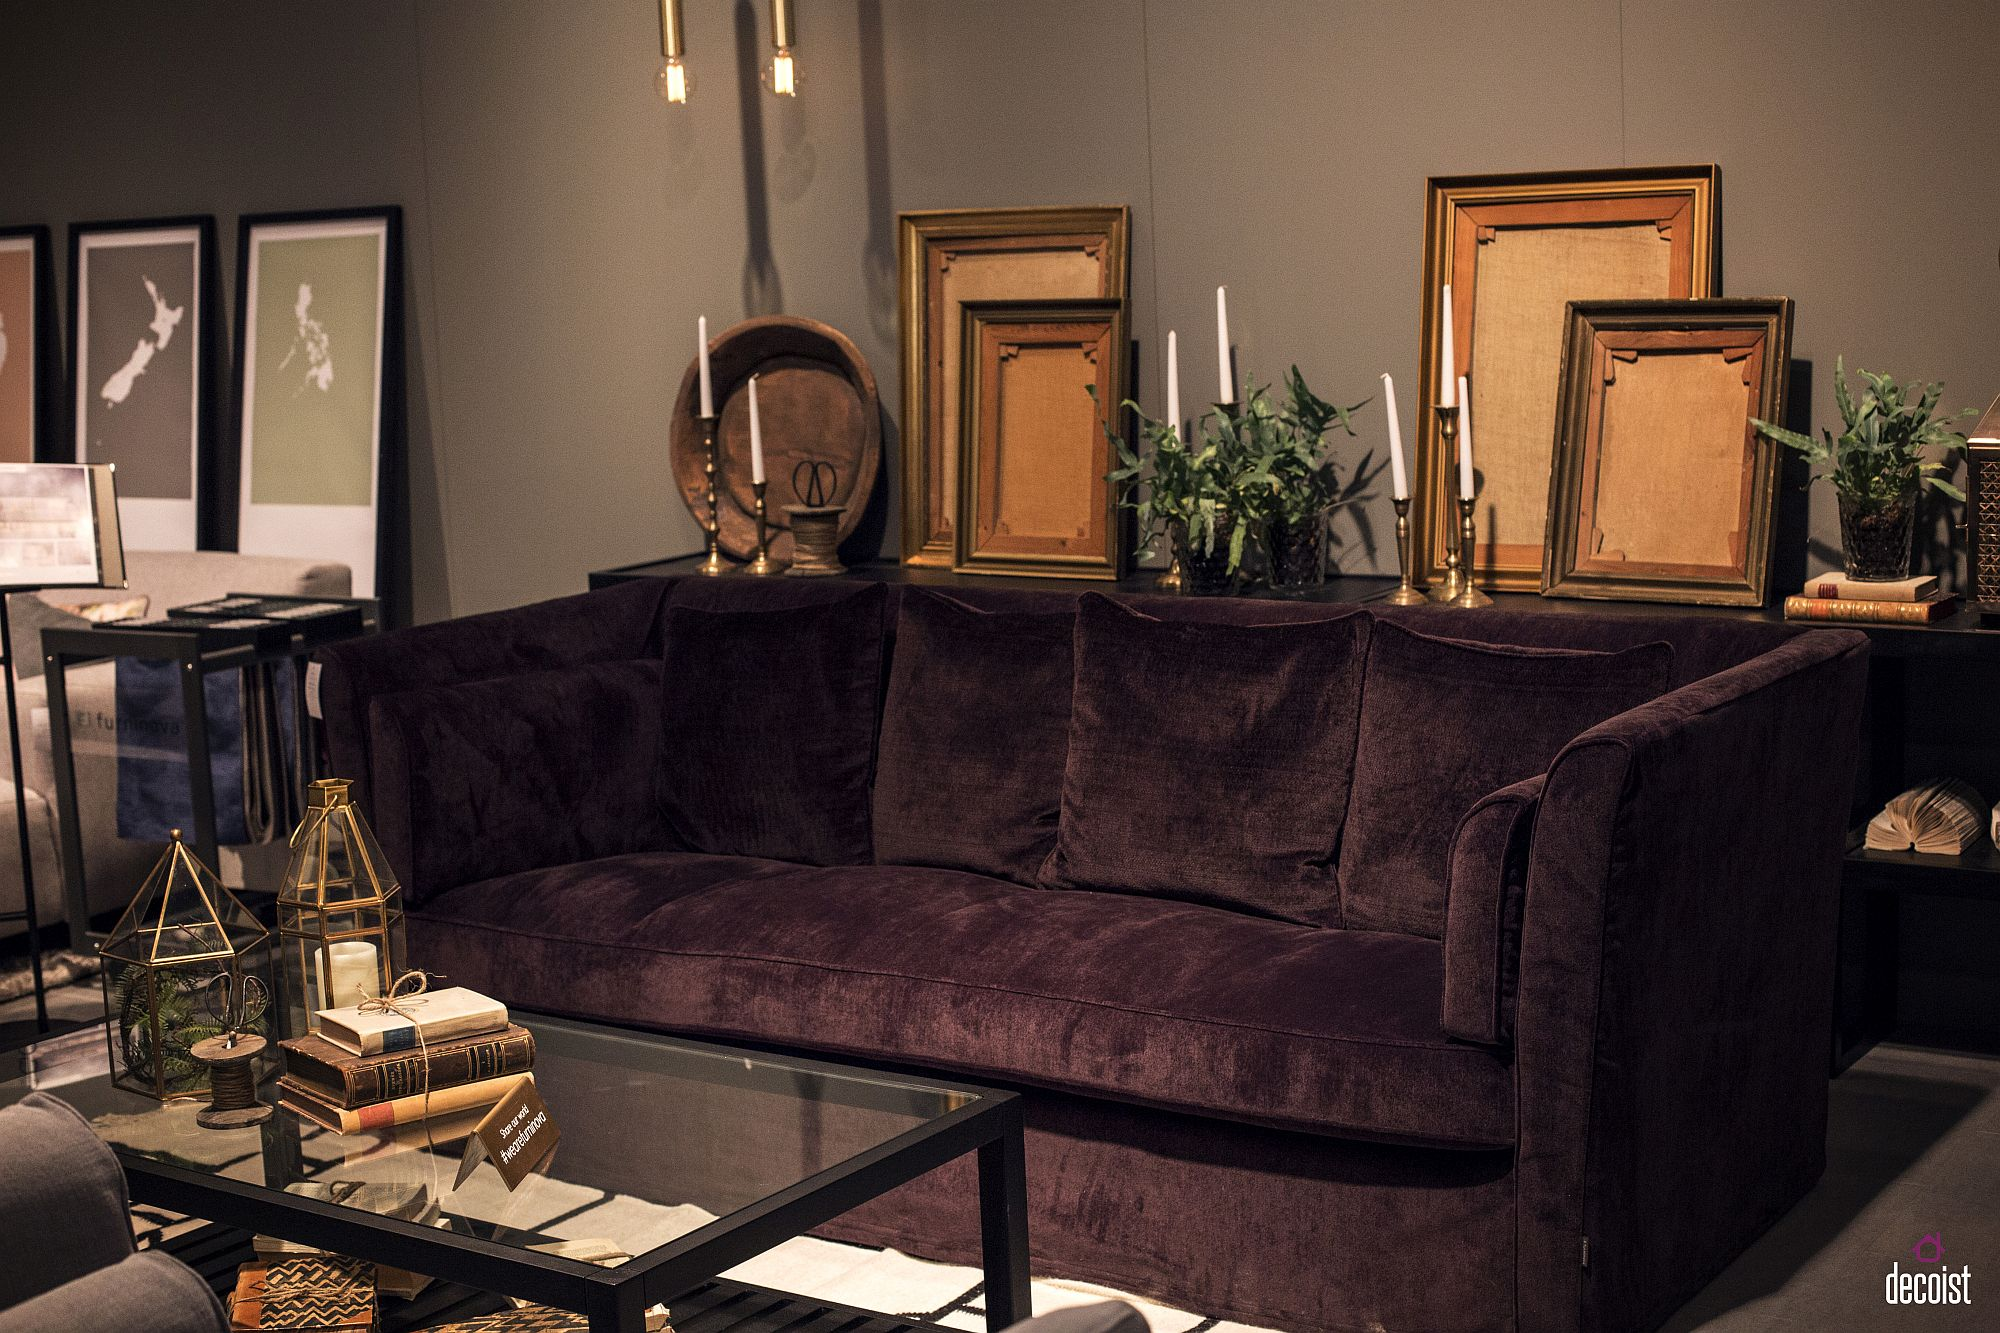 Dark colored sofa acnchors a living room in neutral hues with ease